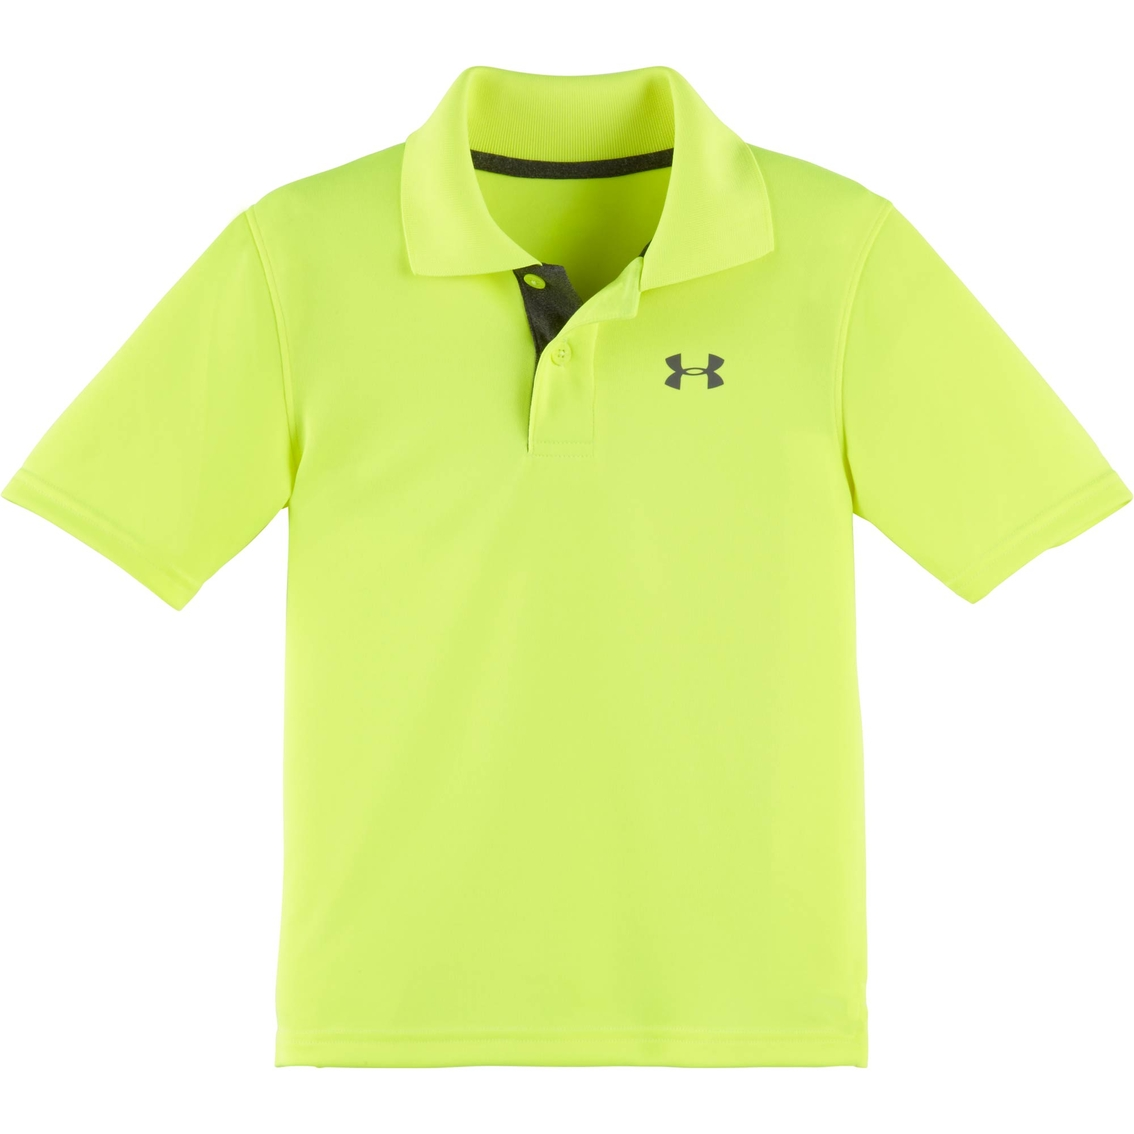 Under armour toddler boys match play polo shirt toddler for Toddler boys polo shirts